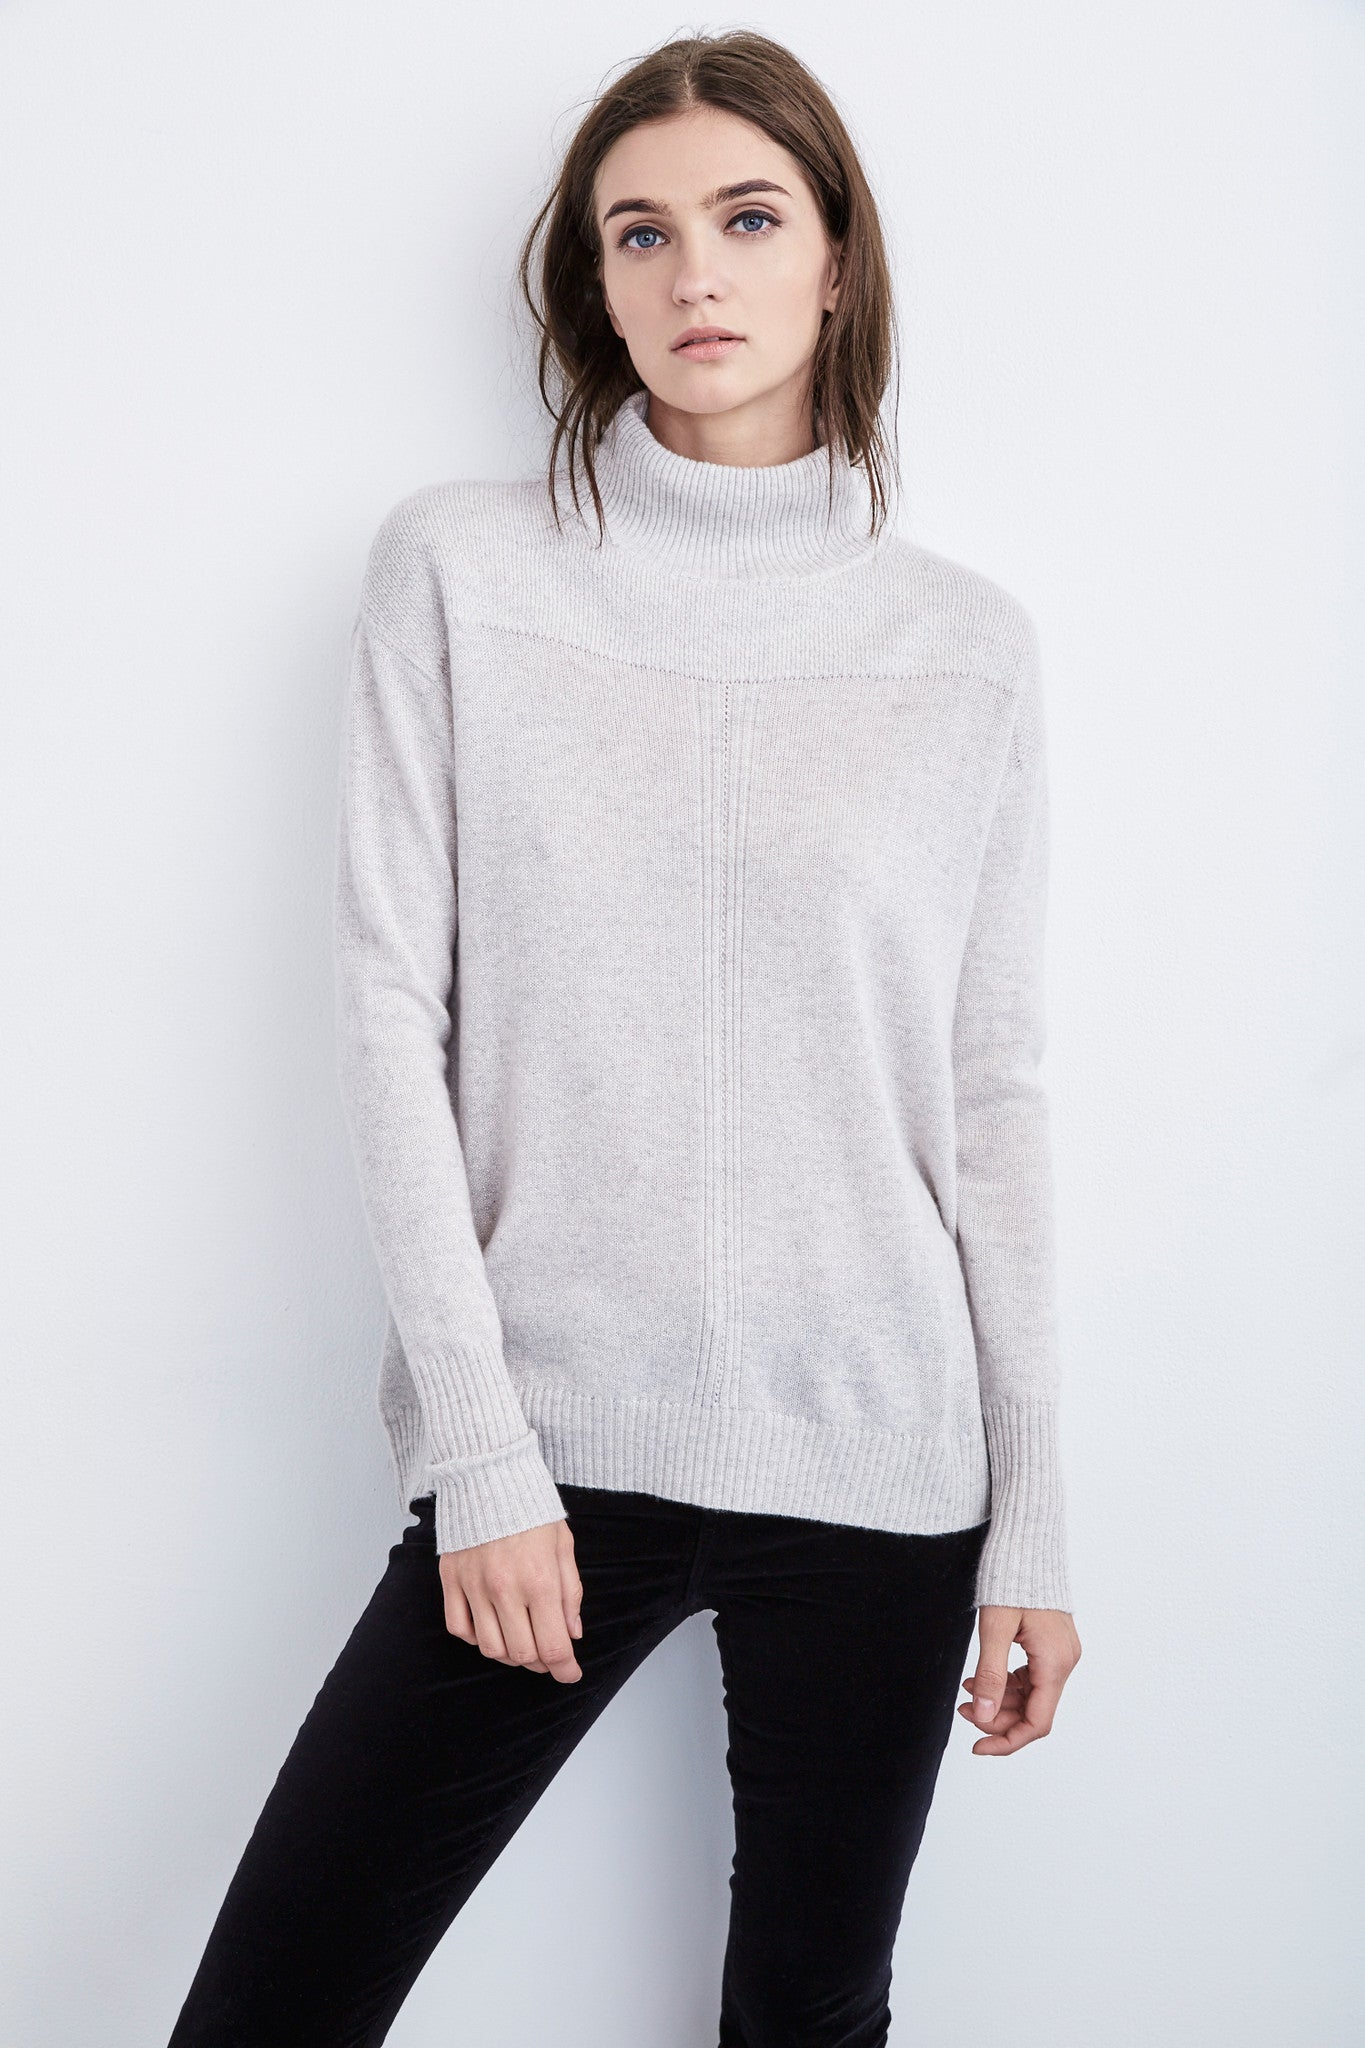 ROSA MOCK NECK CASHMERE SWEATER IN WINTER